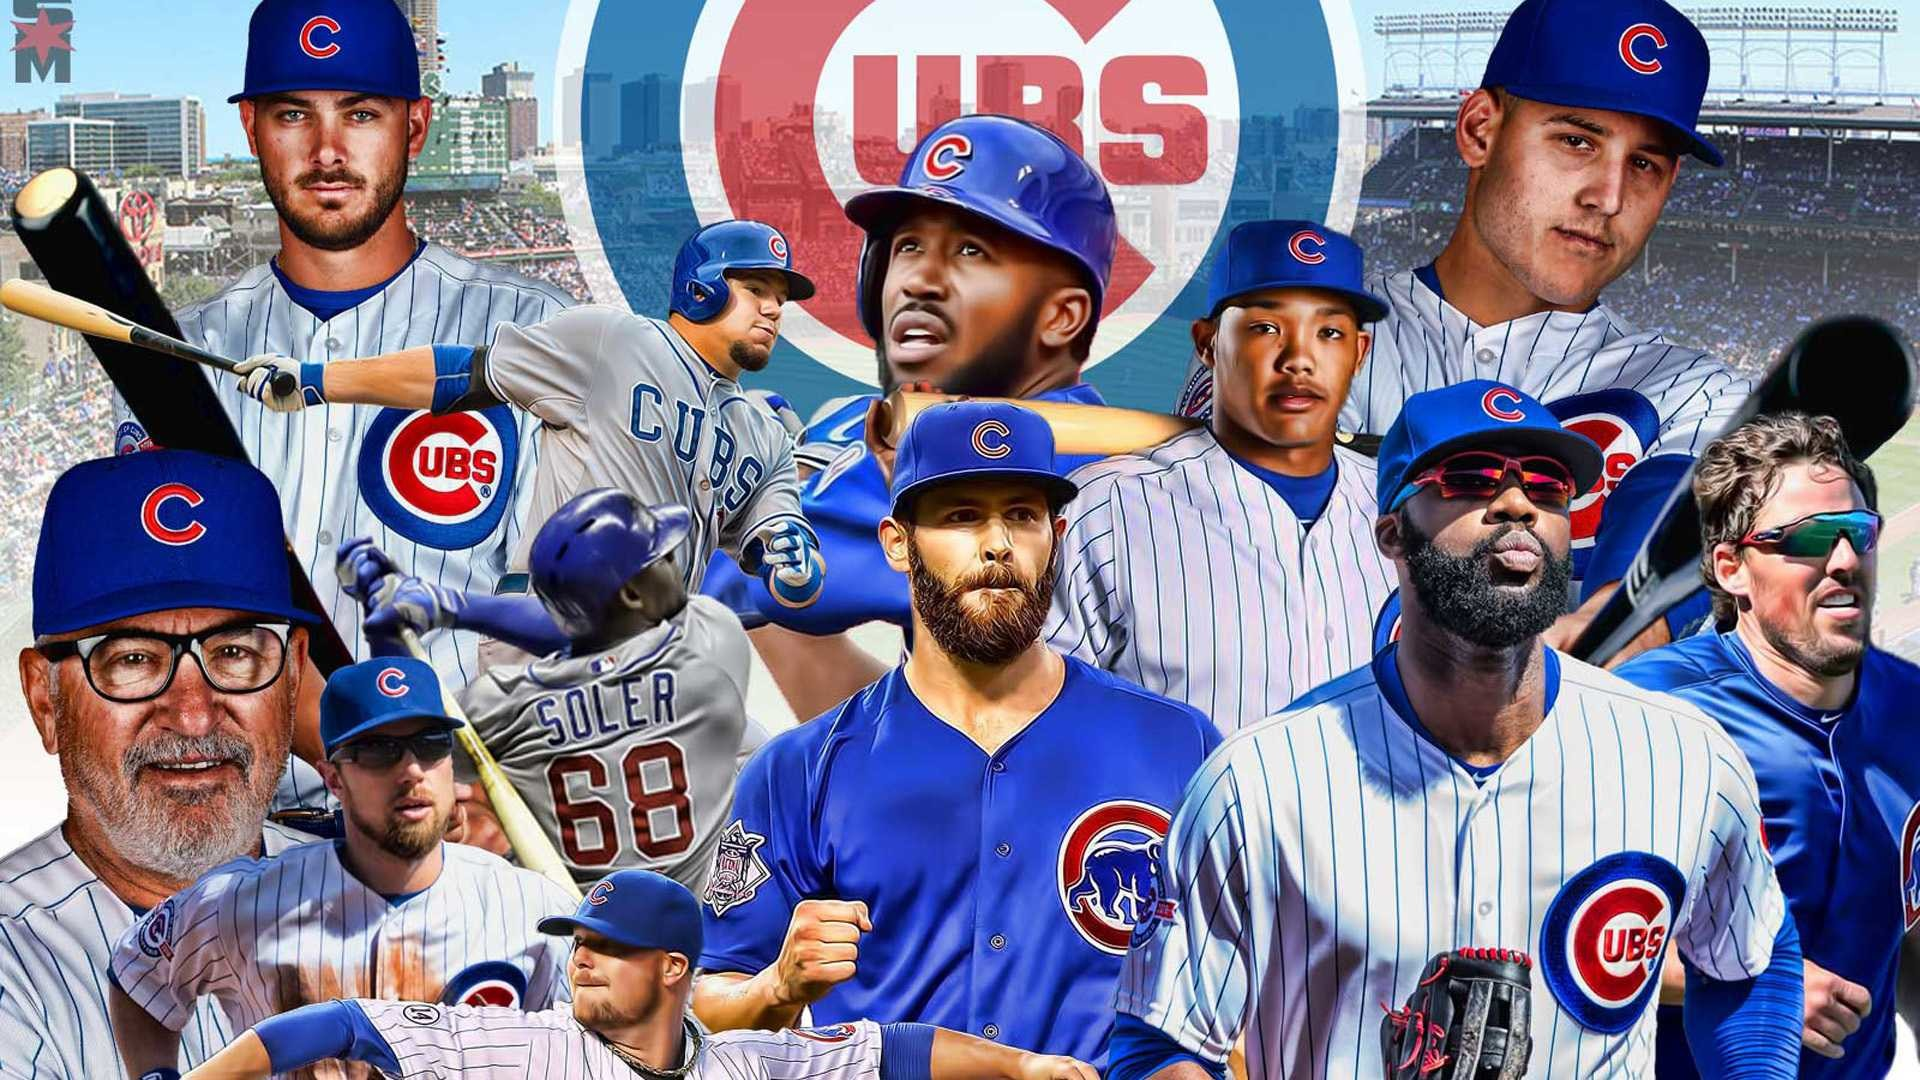 1920x1080 excellent chicago cubs wallpaper - photo #14. The Purple Quill : What to  look for in the MLB